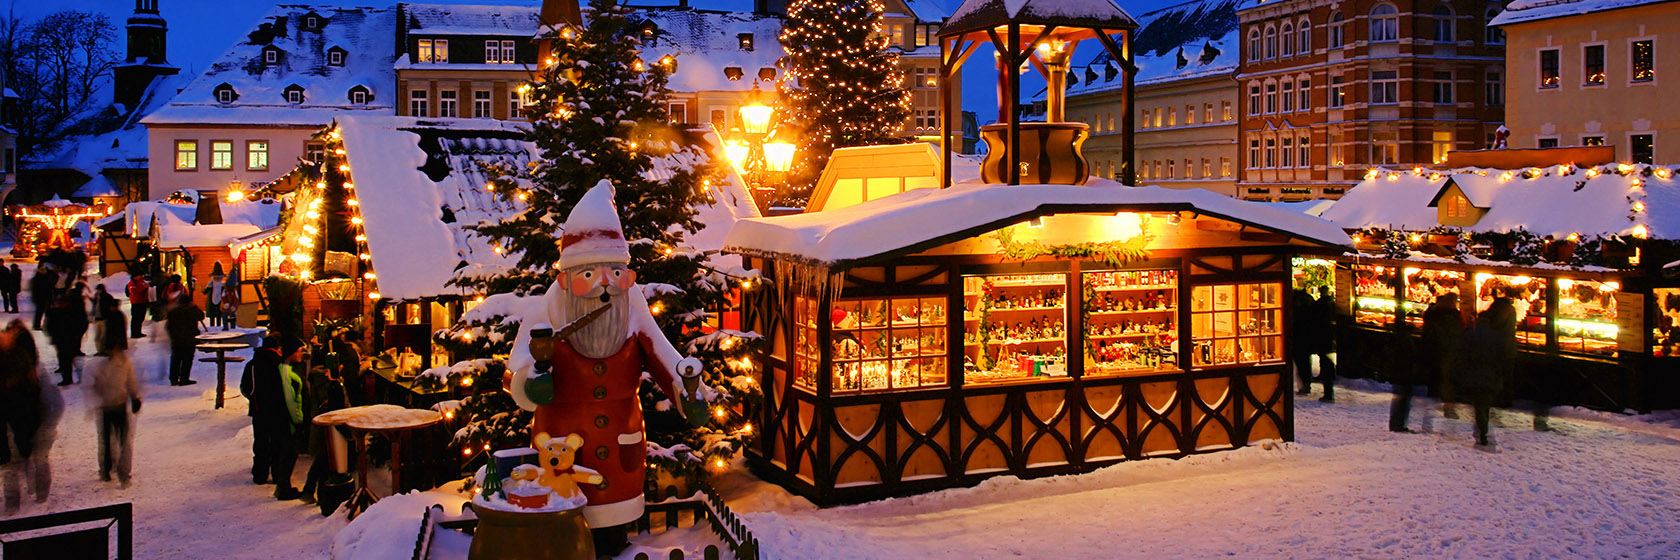 Christmas Markets of Europe - Two Winter Wonderlands